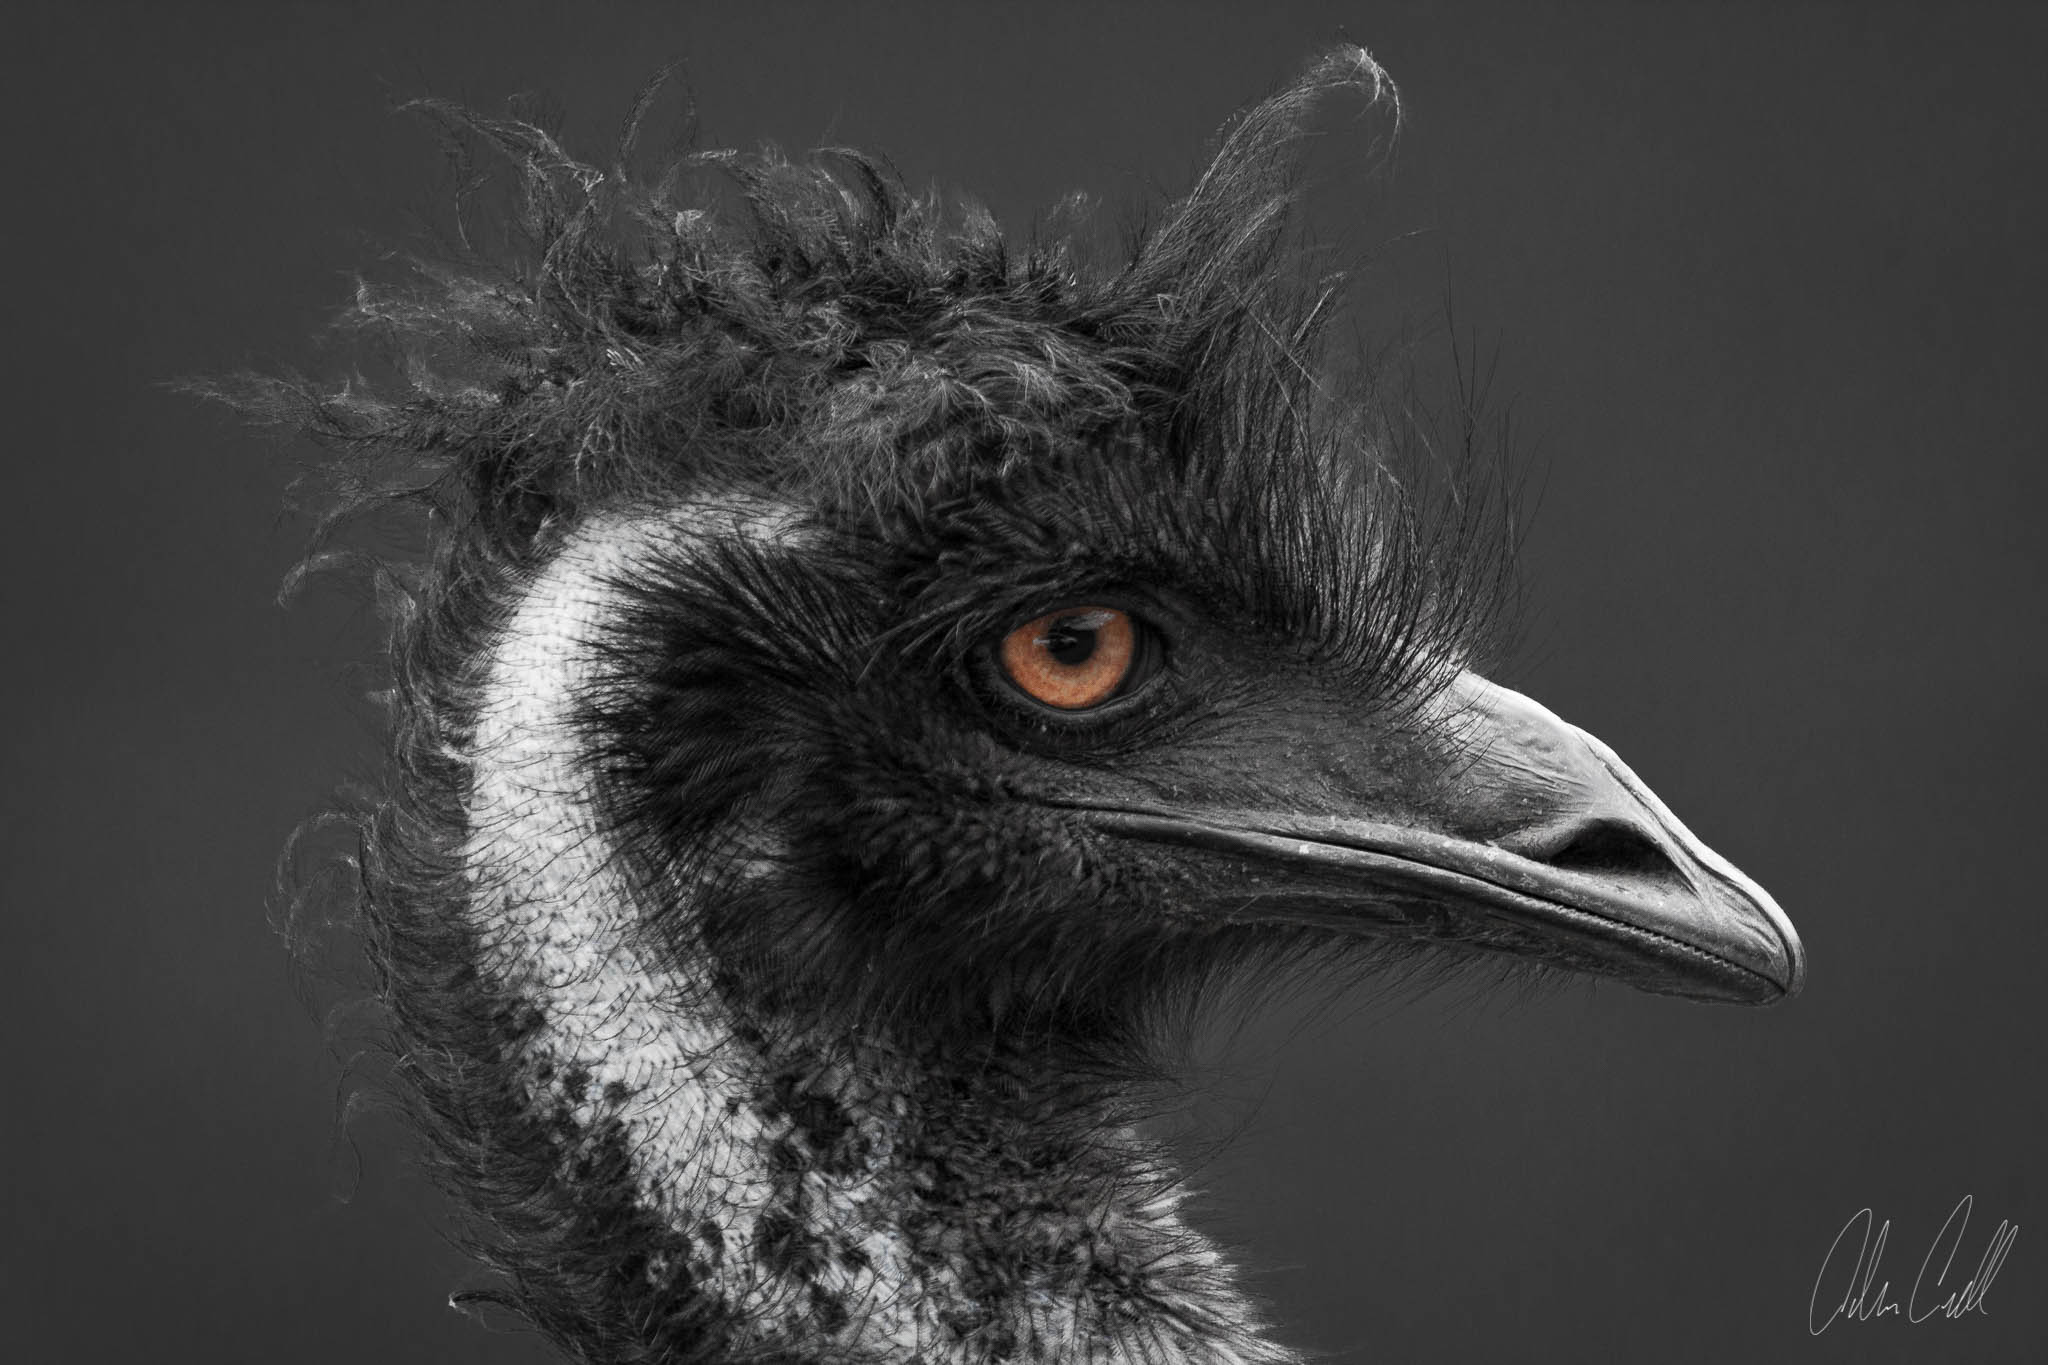 Emu  #20150314_0308  FACTOID: Emus have two eyelids, one for blinking, and one to keep out dust.  STATUS:  Stable